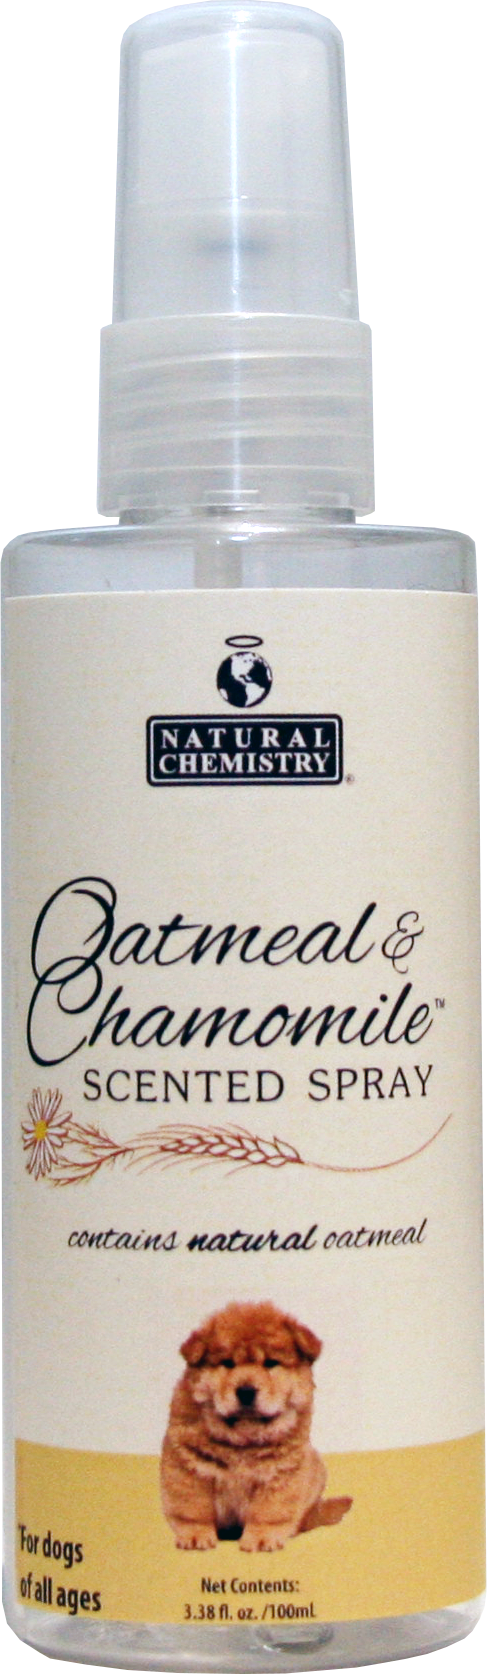 11107 Oatmeal & Chamomile Scented Spray.png